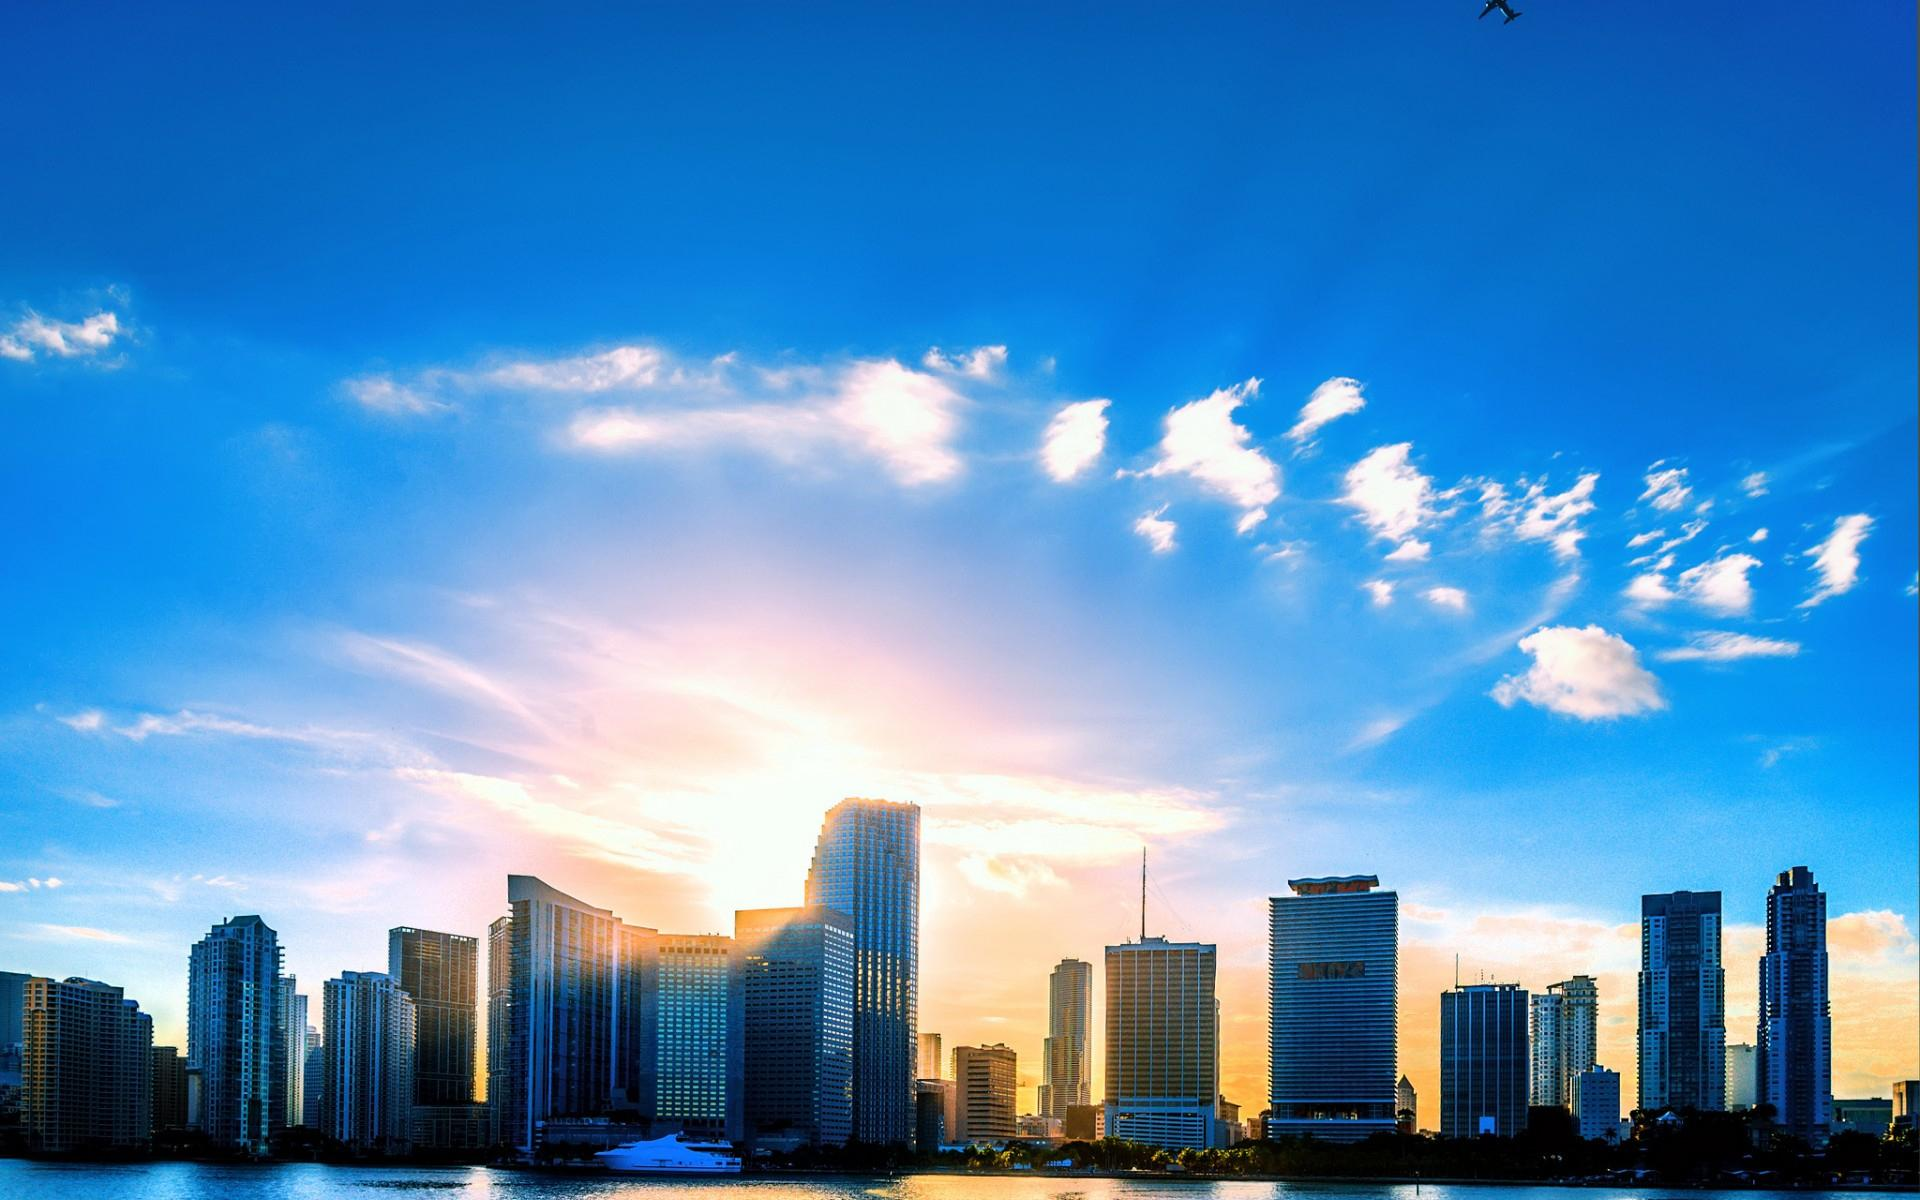 Microsoft Animated Wallpaper Blue Sunset Over The City Hd Desktop Wallpaper